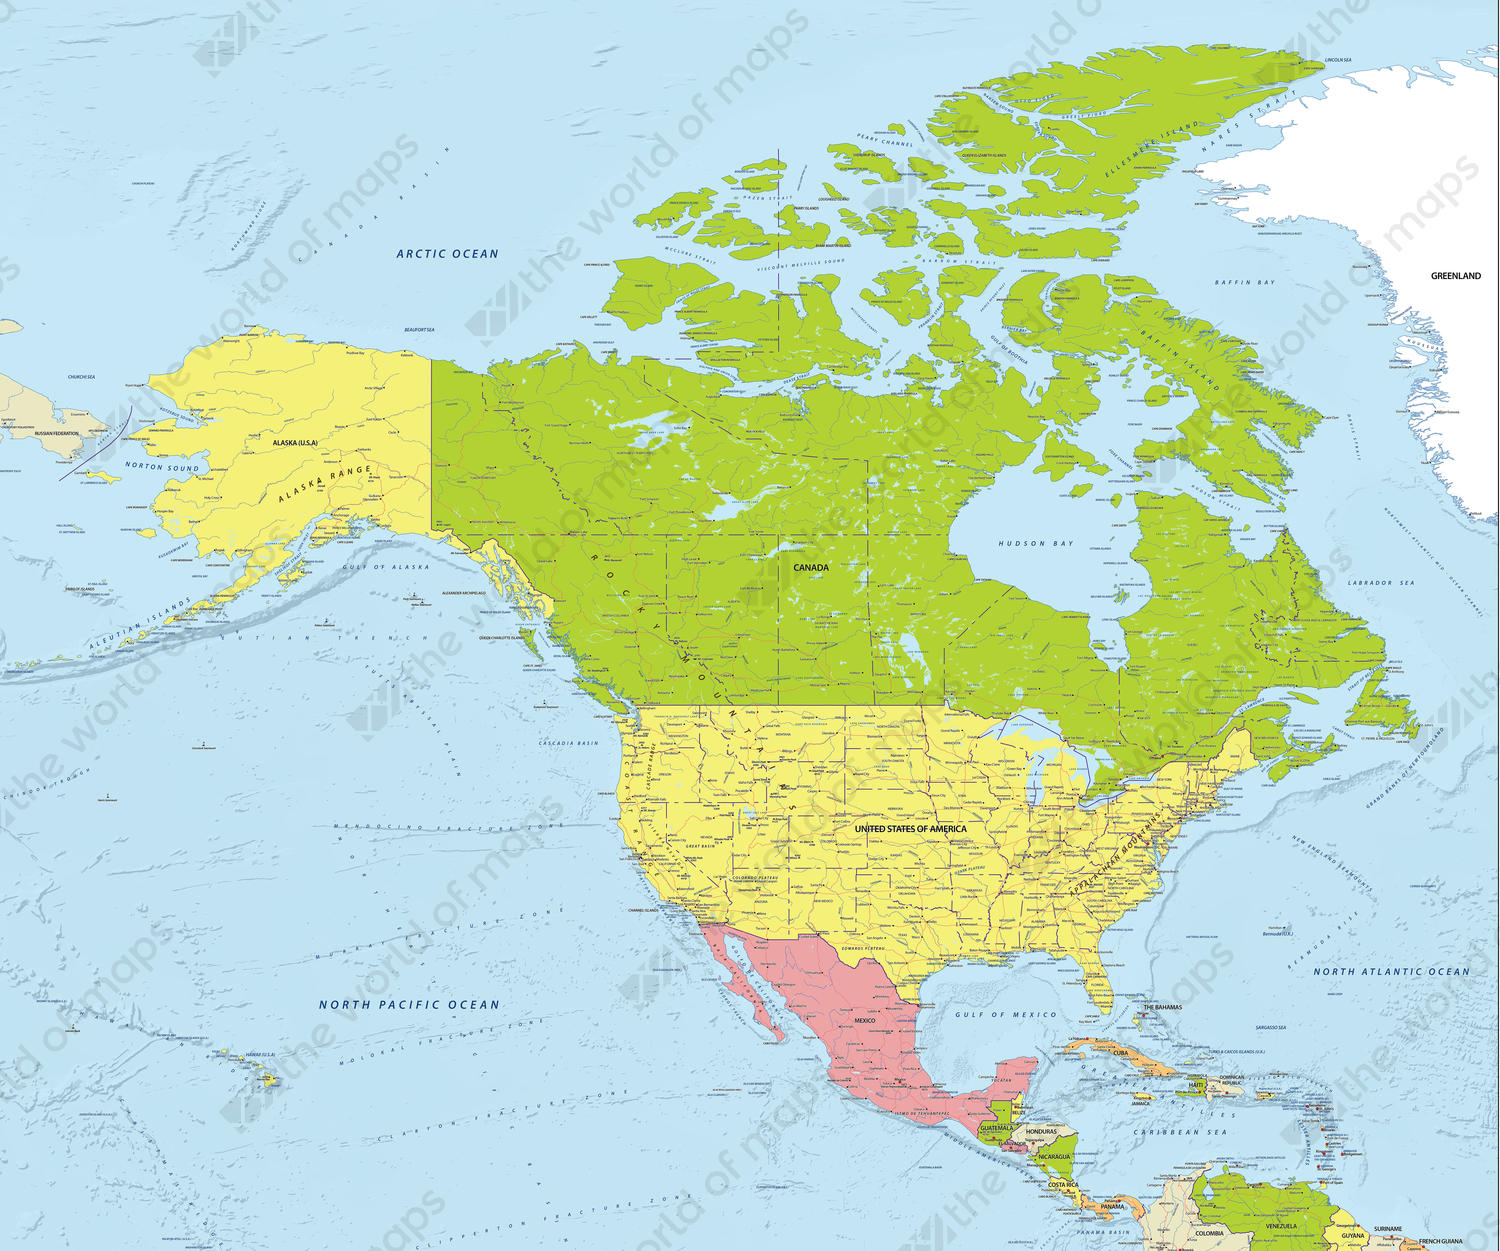 Digital Map North America Political 624 | The World of Maps.com